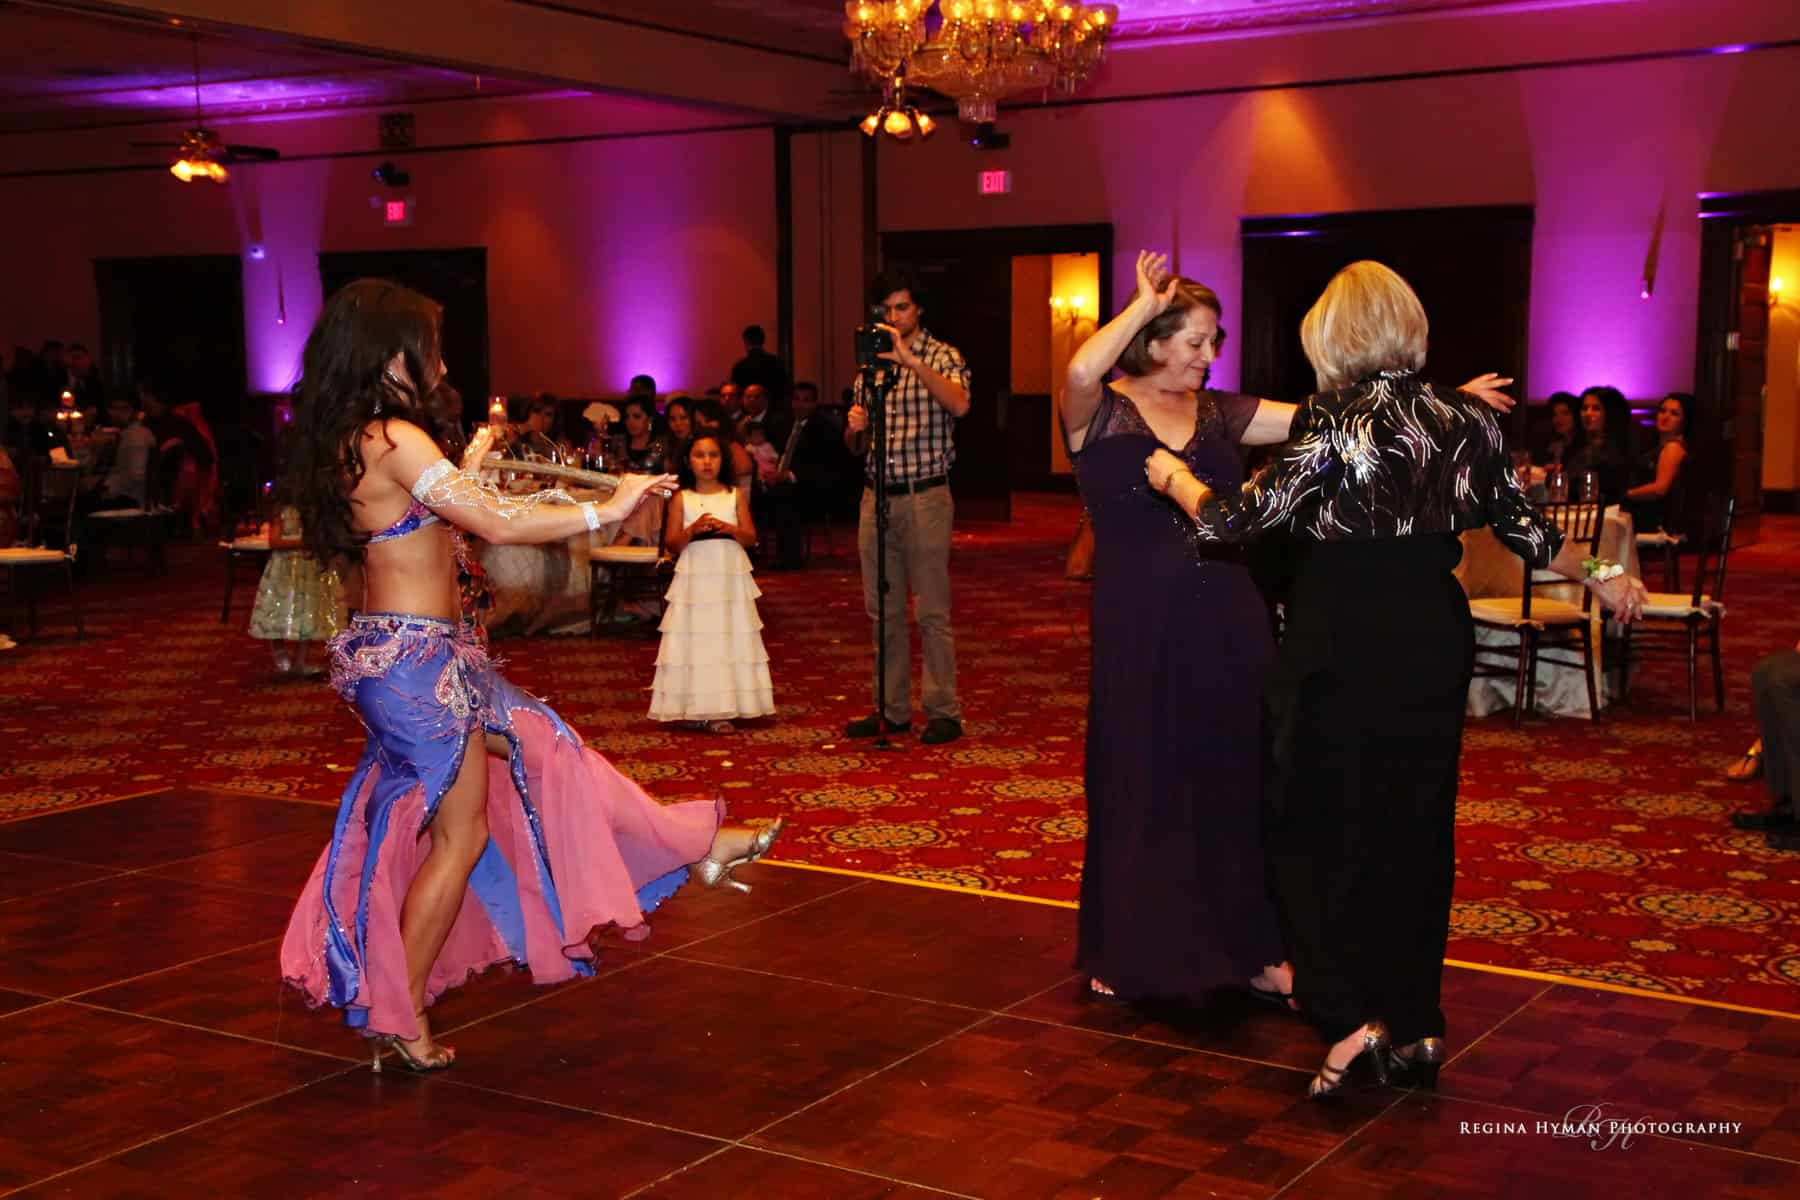 Belly Dancer Carrara Nour performs a cane dance at an Arabic Wedding in Florida